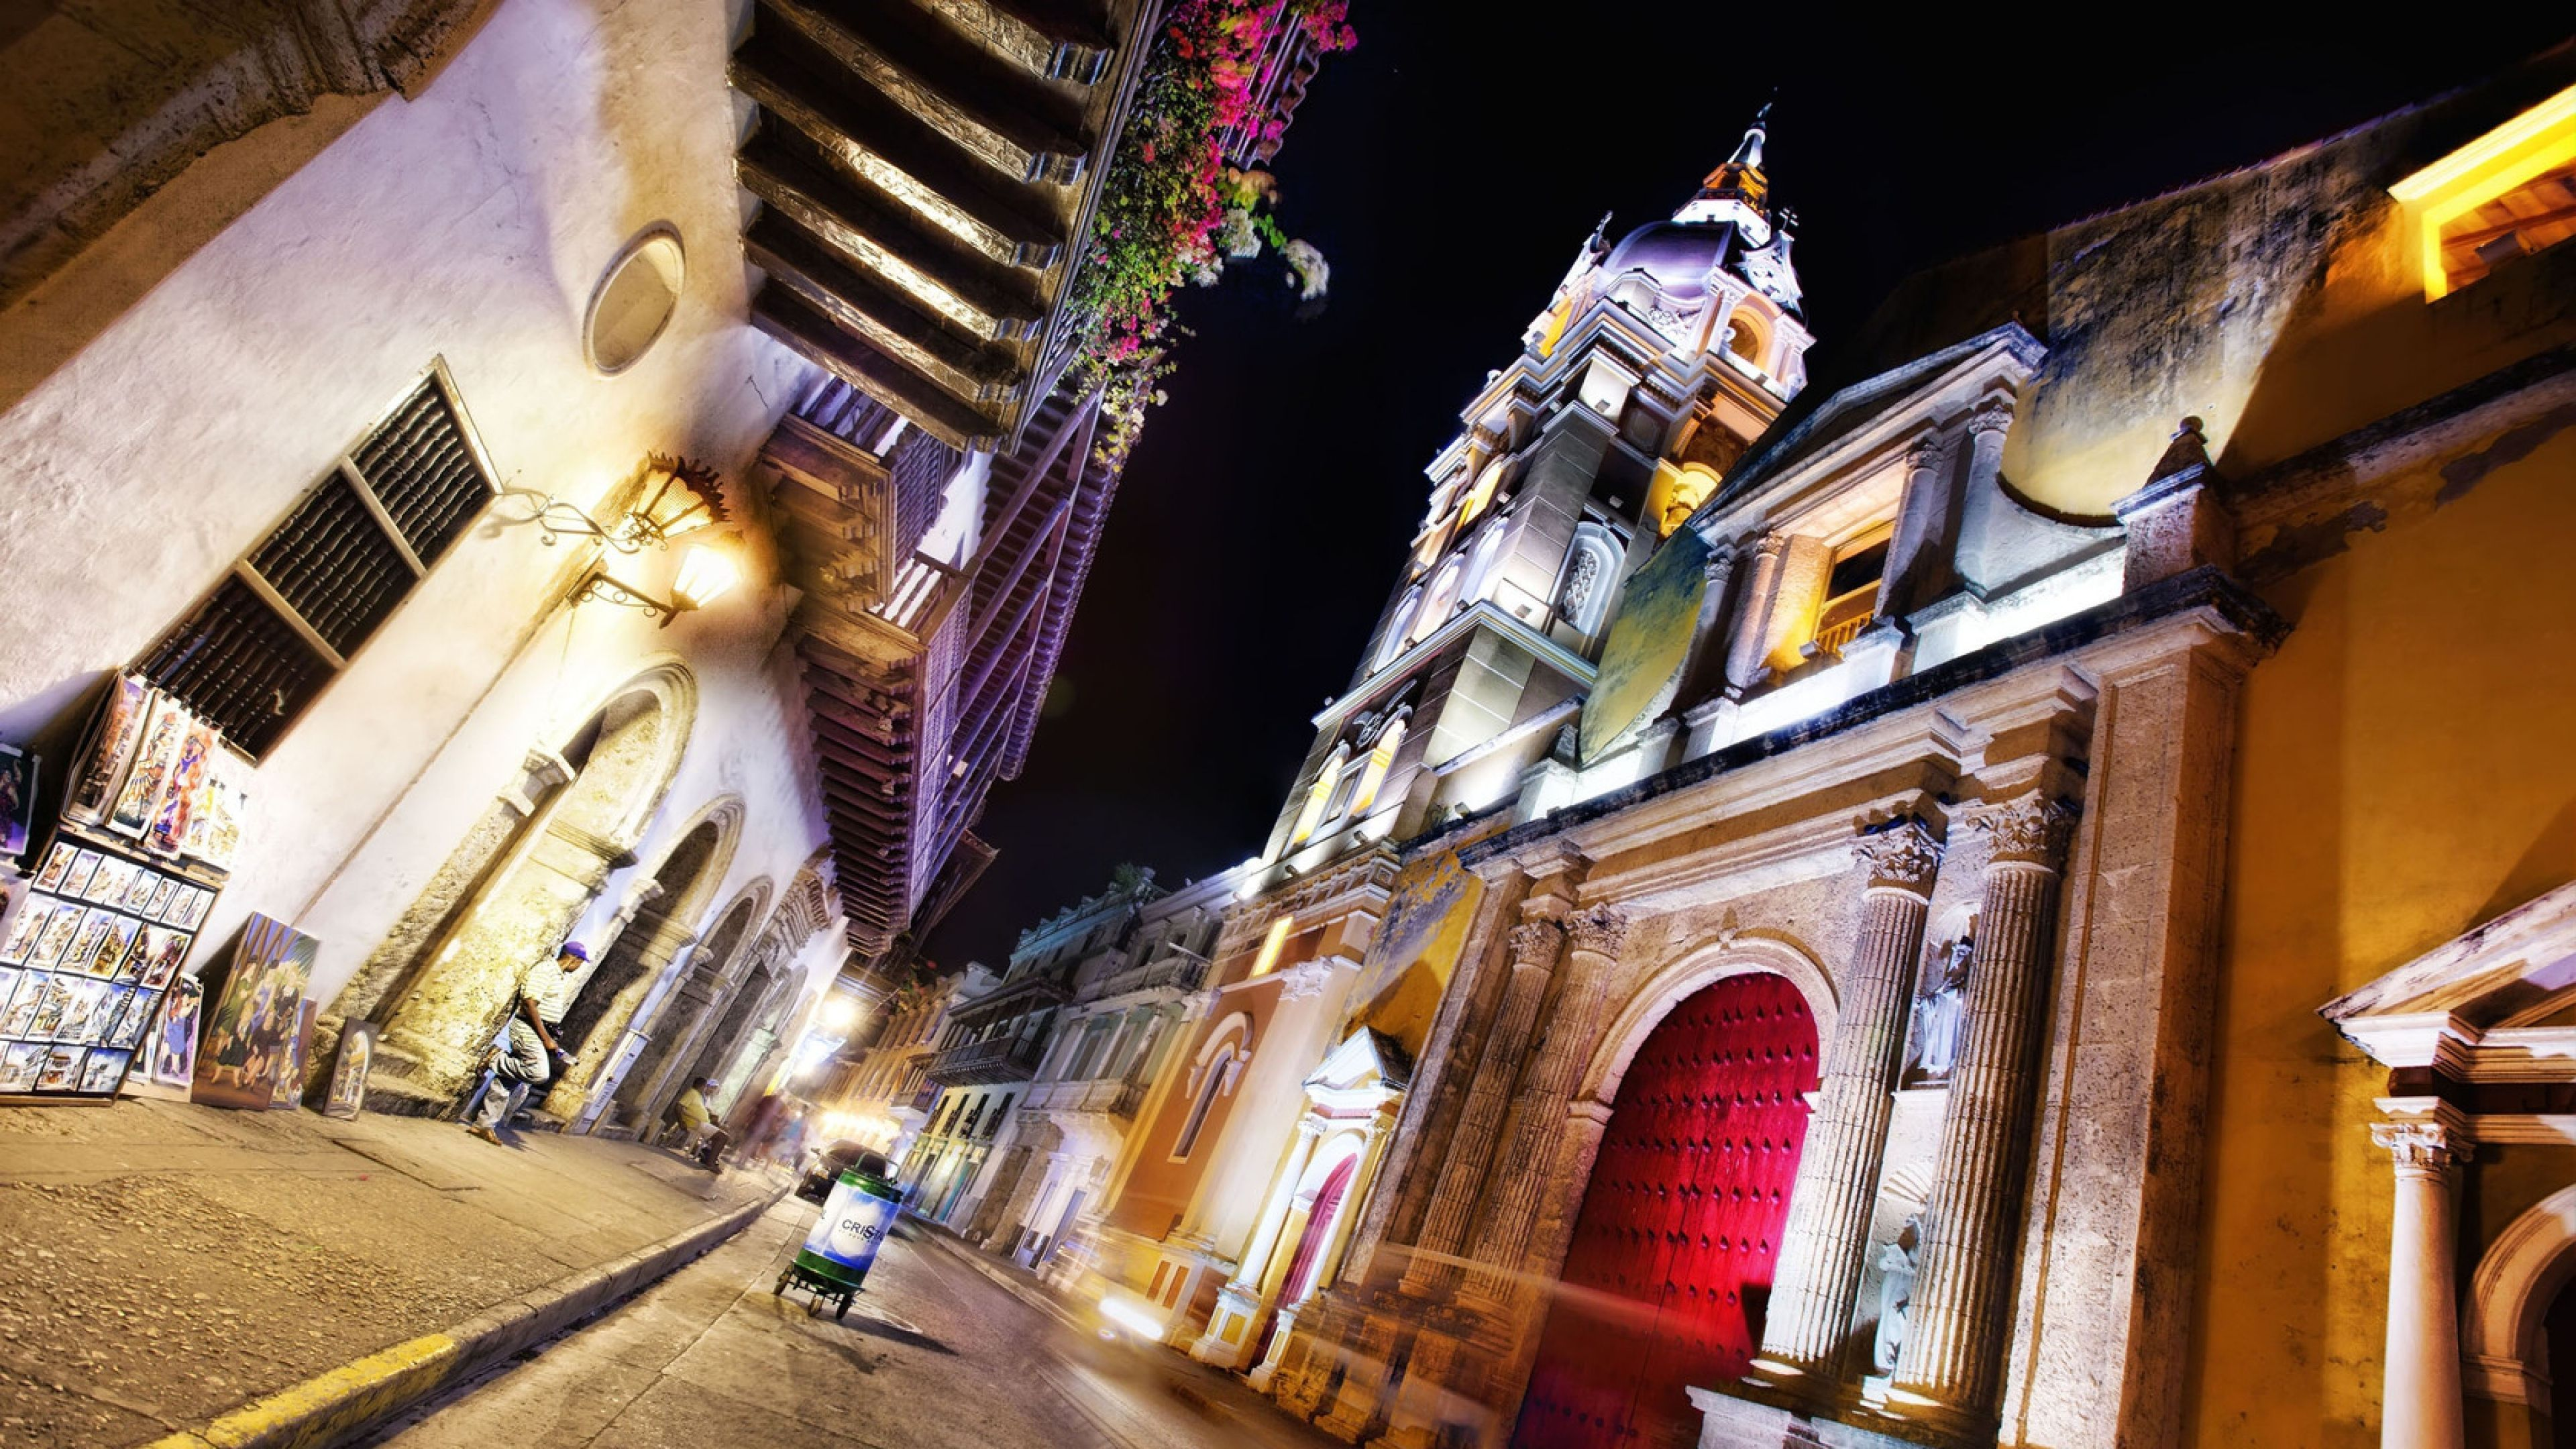 3840x2160 Wallpaper cartagena, colombia, night, street, architecture ...